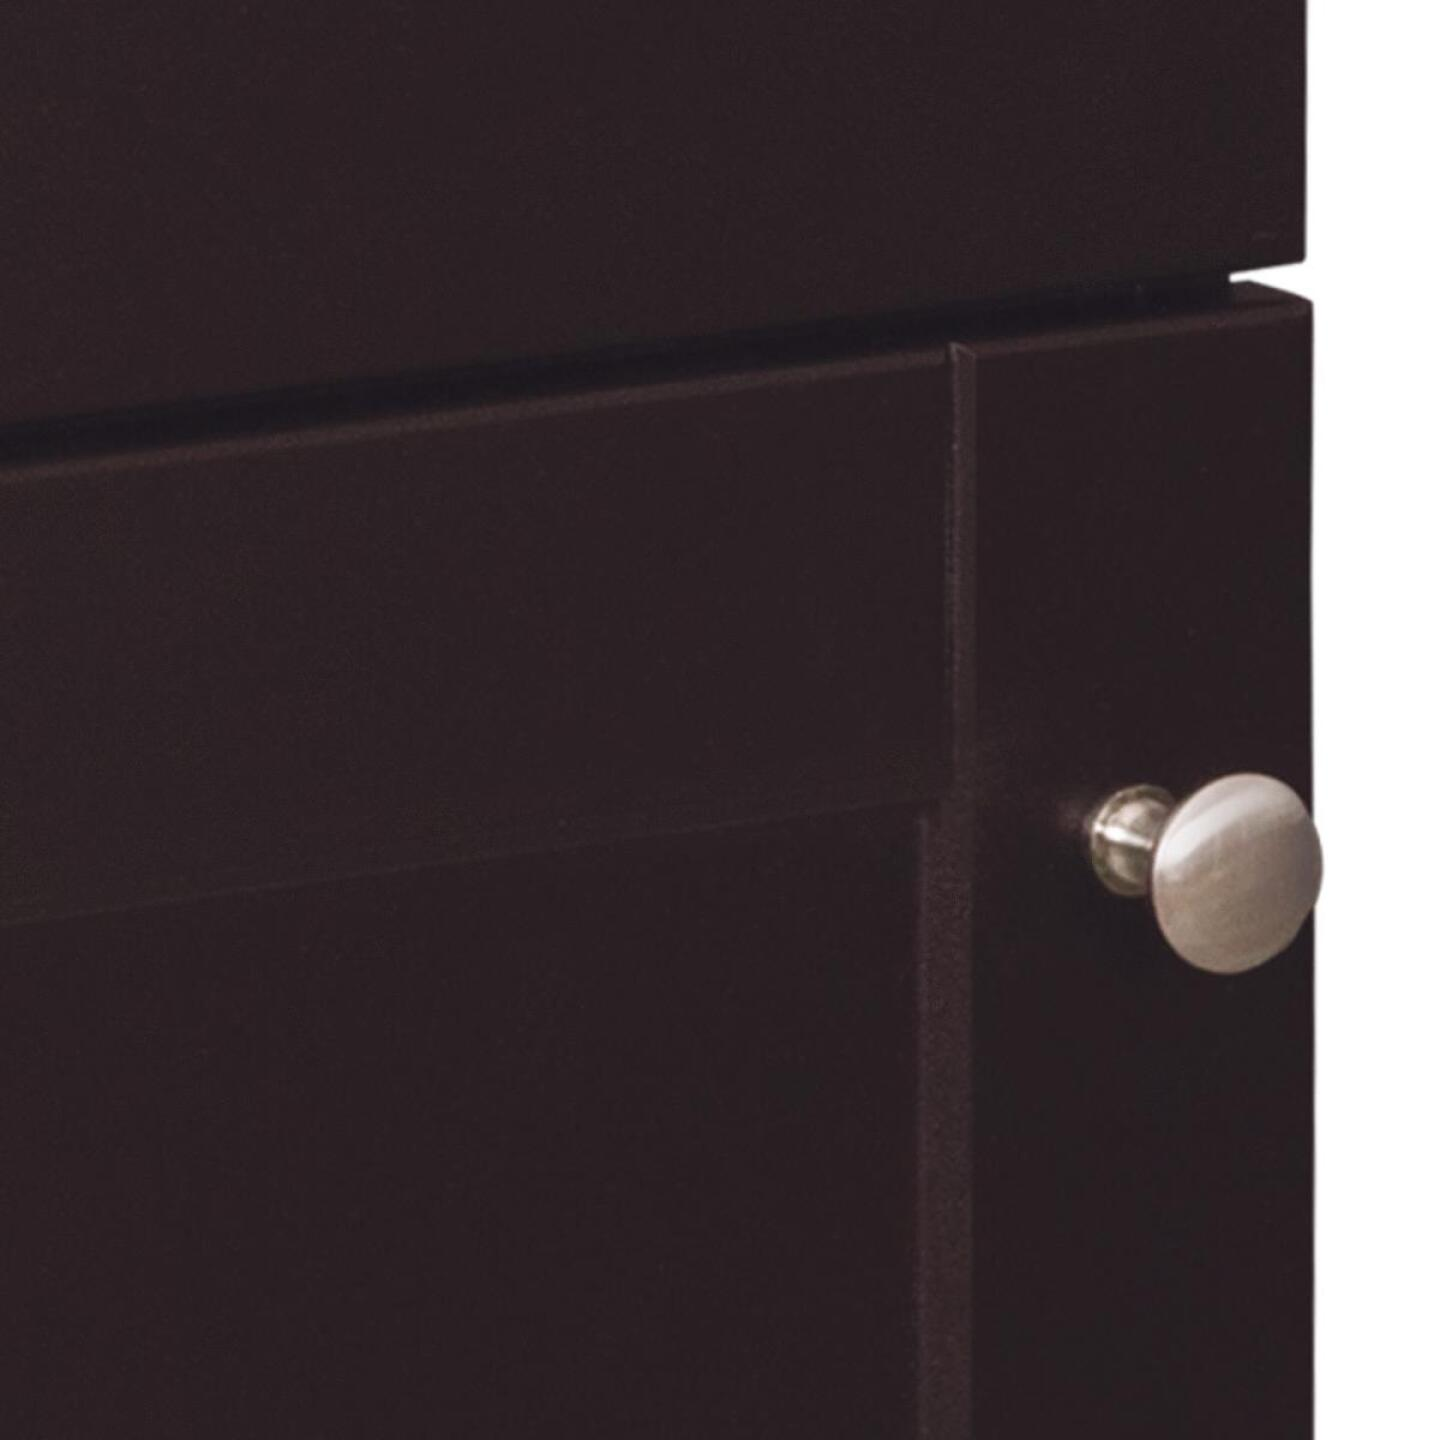 Continental Cabinets European Espresso 18 In. W x 33-1/2 In. H x 12-1/2 In. D Vanity with Cultured Marble Top Image 4